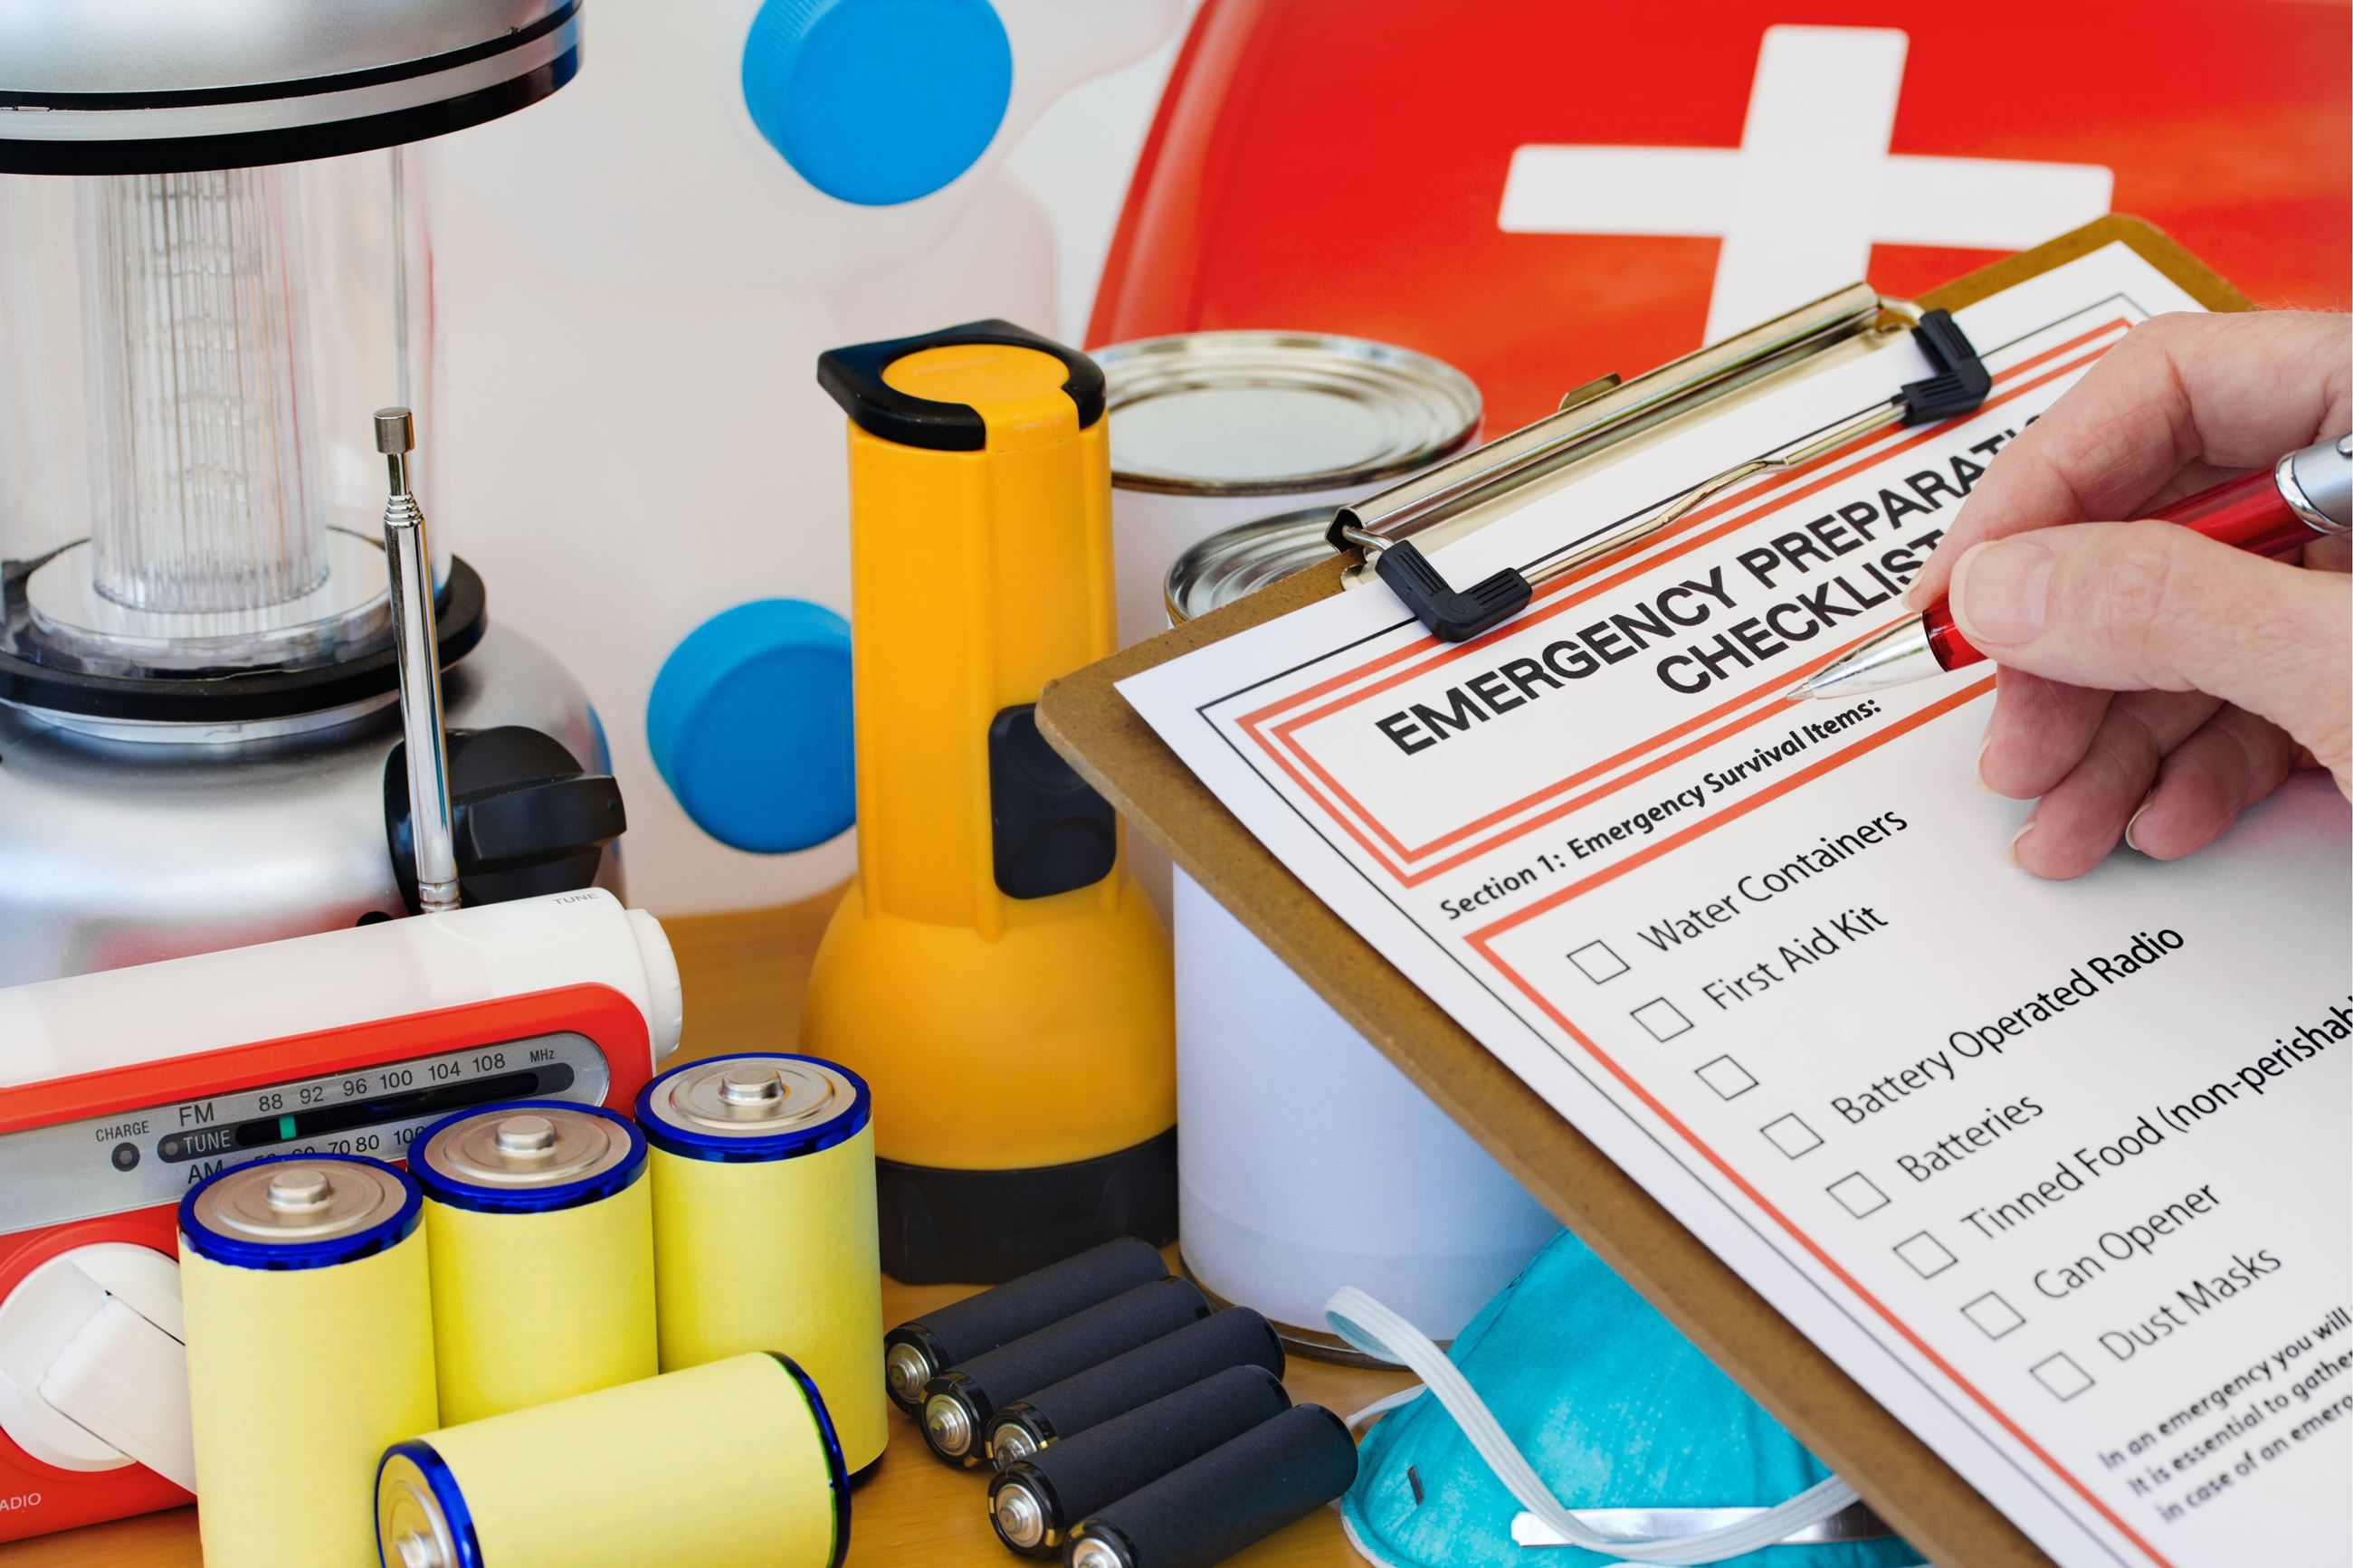 Emergency Preparedness Checklist Photo Flashlight